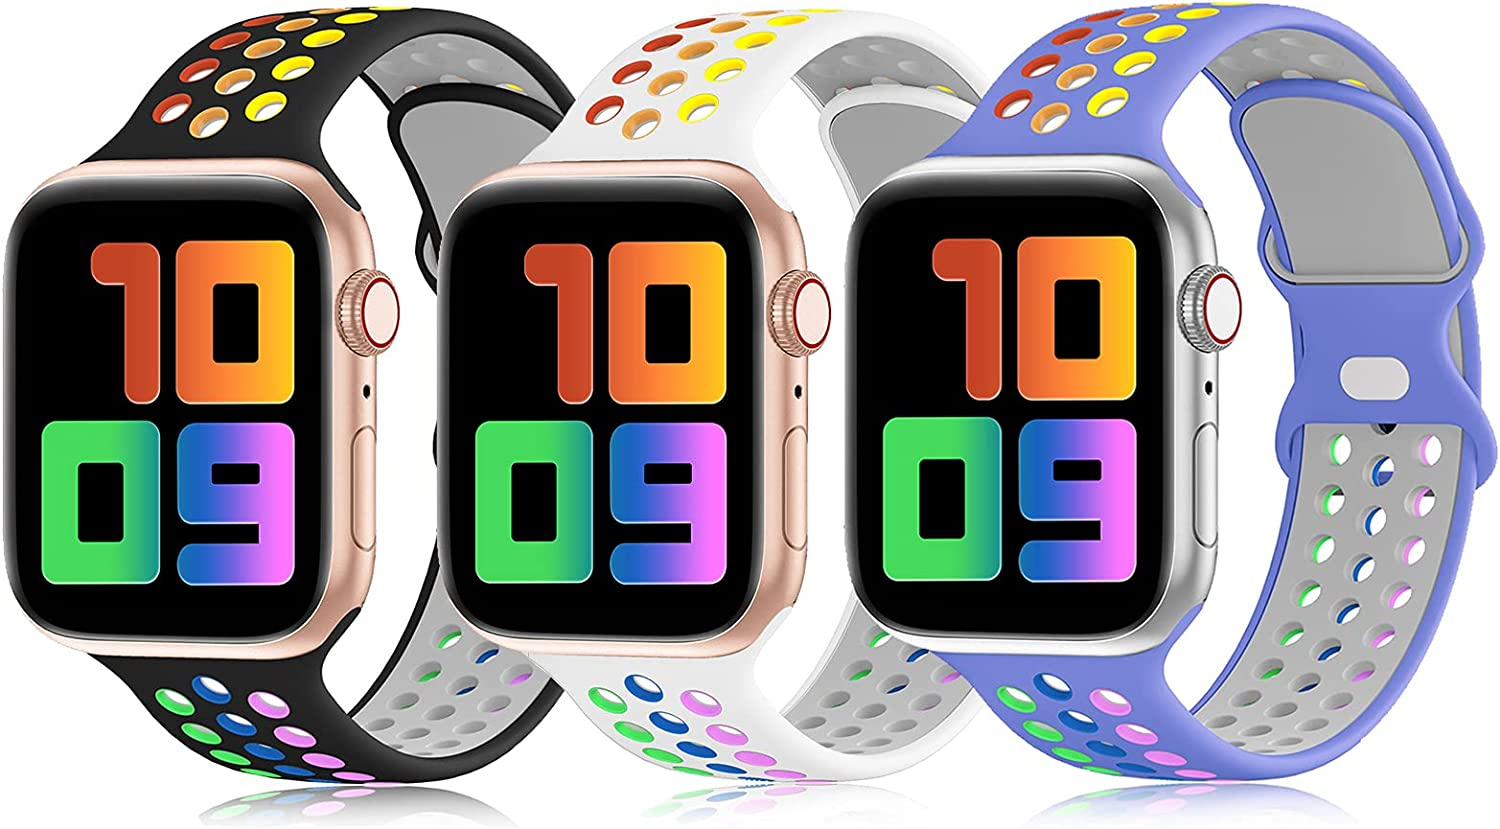 YAXIN 3 Pack Sport Bands Compatible for Apple Watch Bands 38mm 40mm 42mm 44mm, Breathable Soft Silicone Sport Replacement Wristband Women Men Compatible with iWatch Series SE/6/5/4/3/2/1